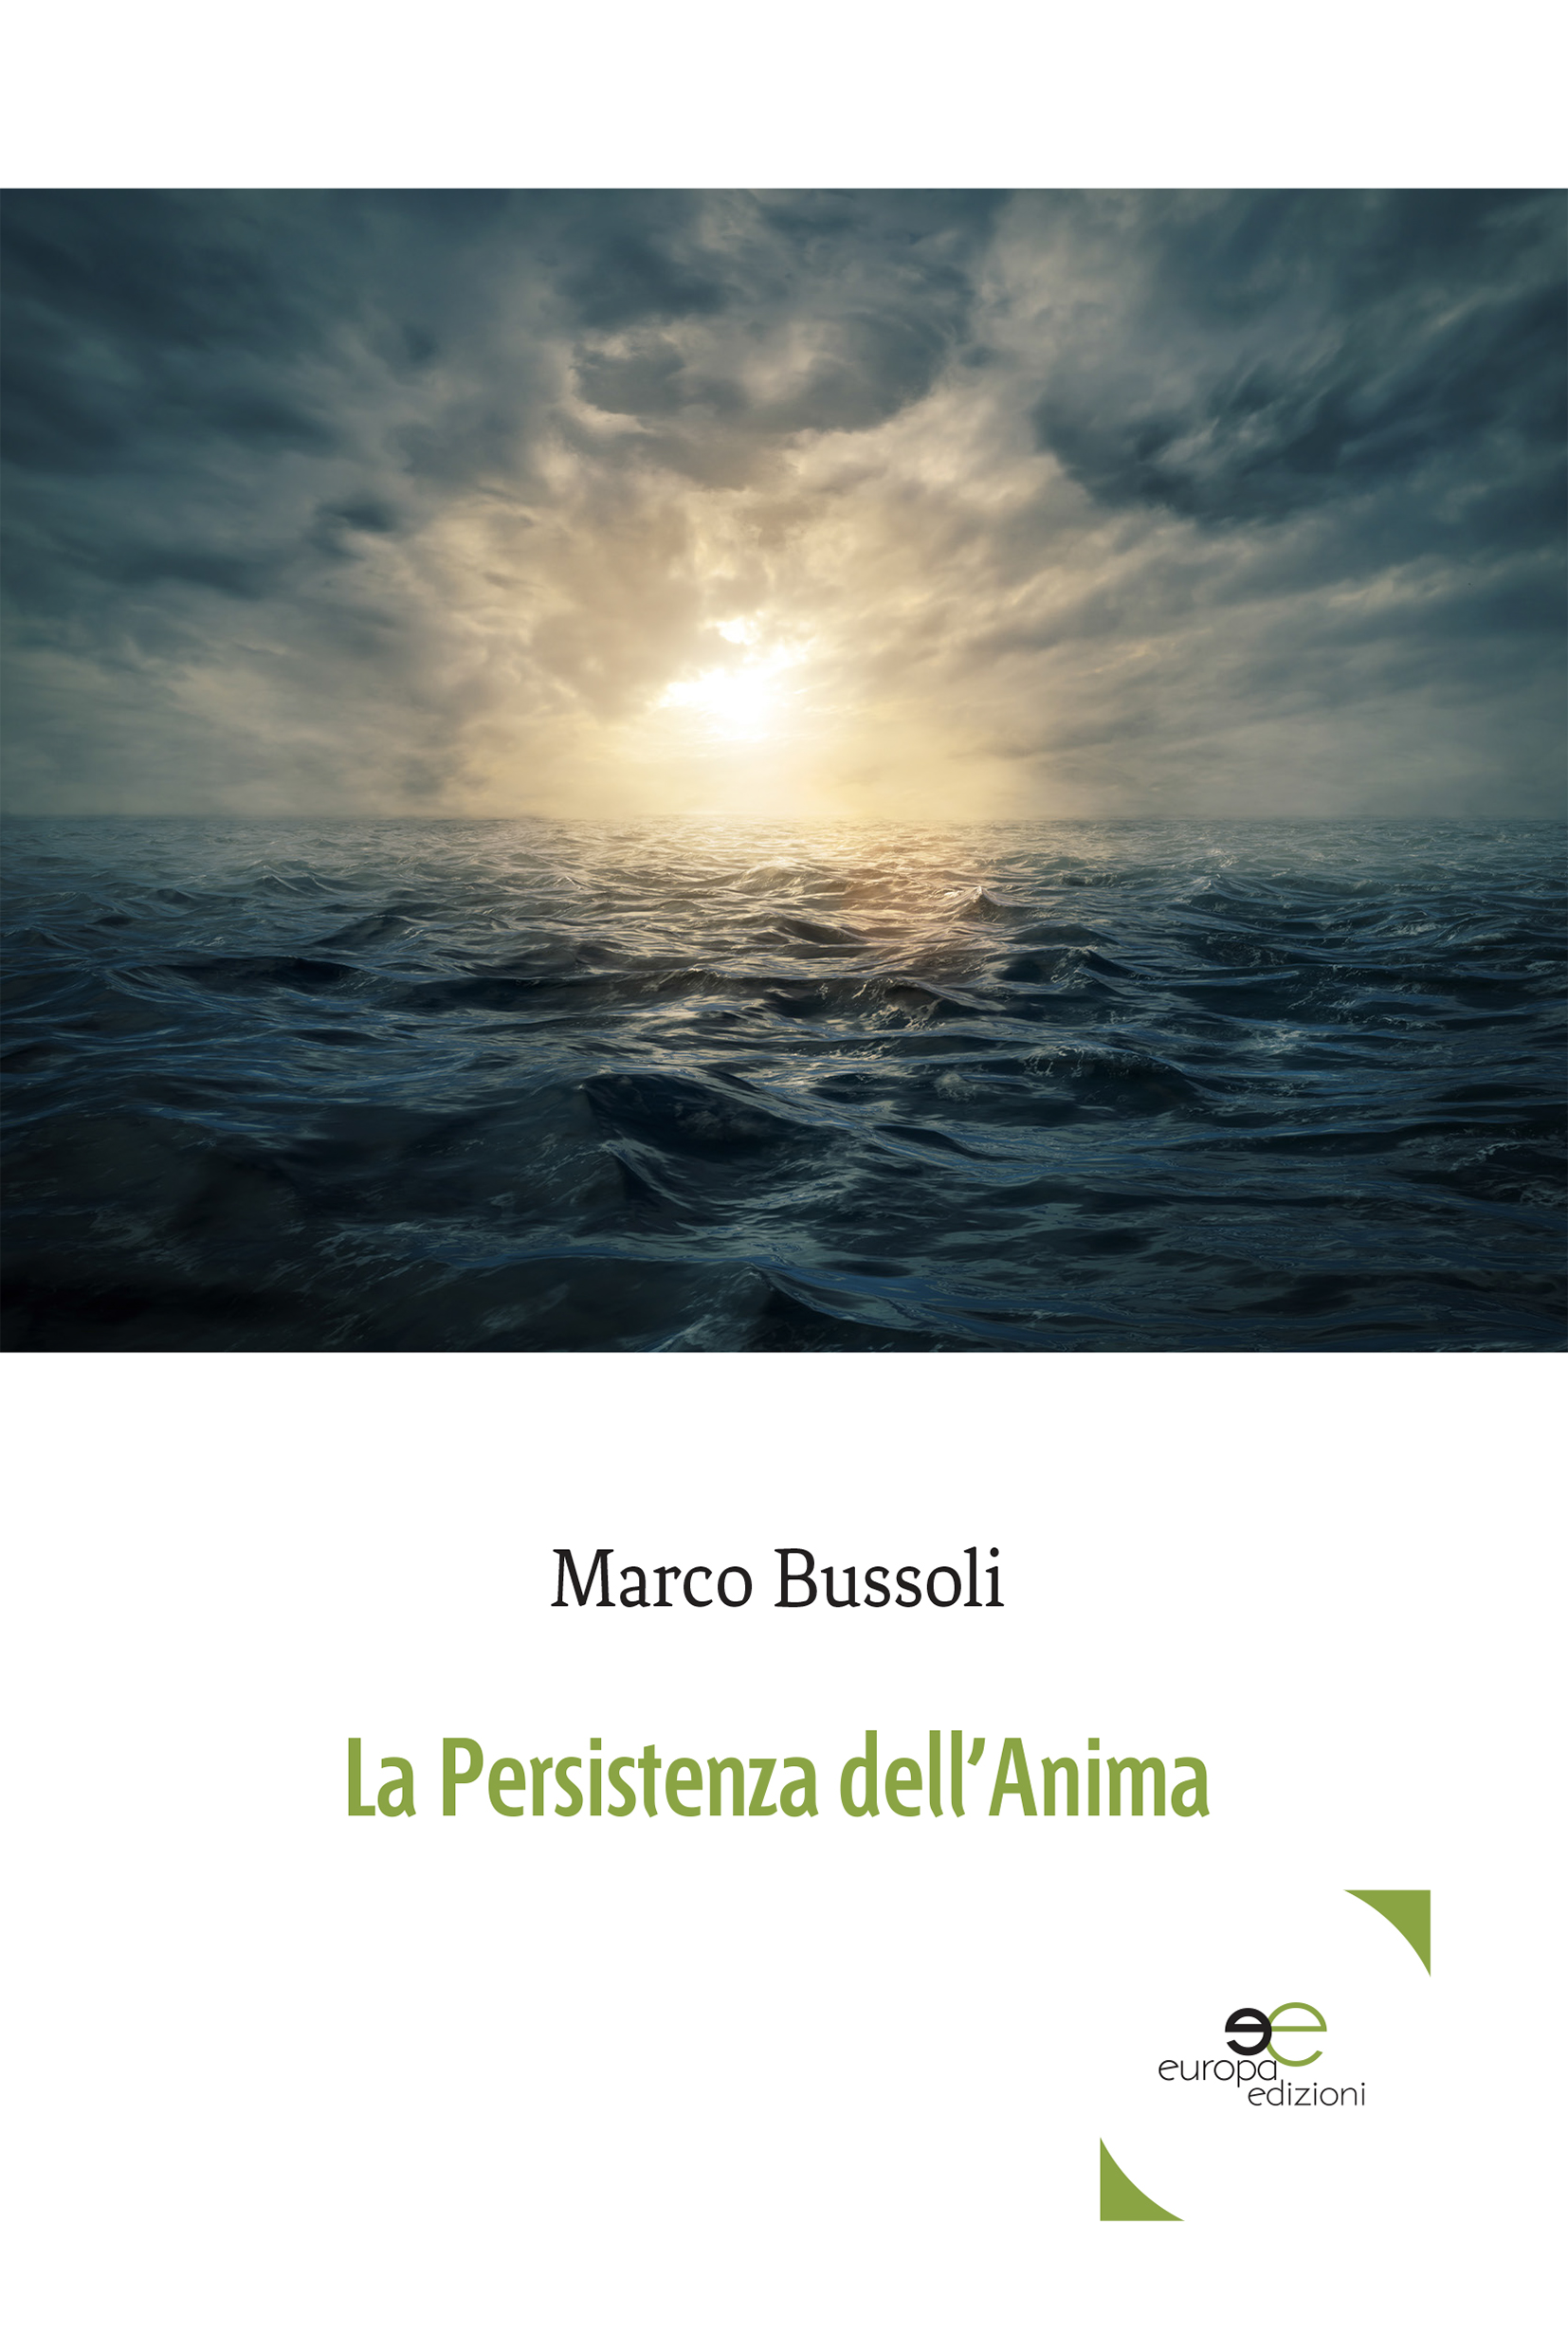 La Persistenza dell'Anima